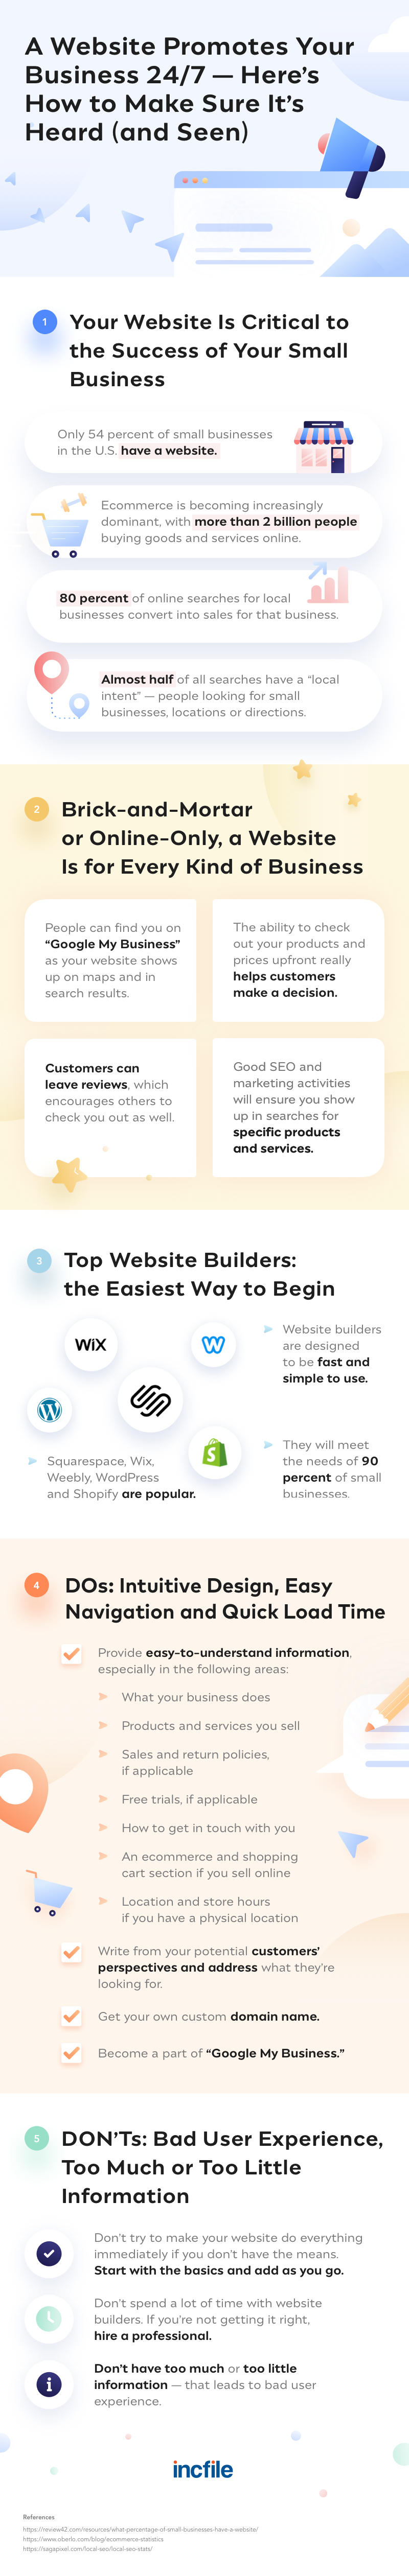 how to build a successful website for small business